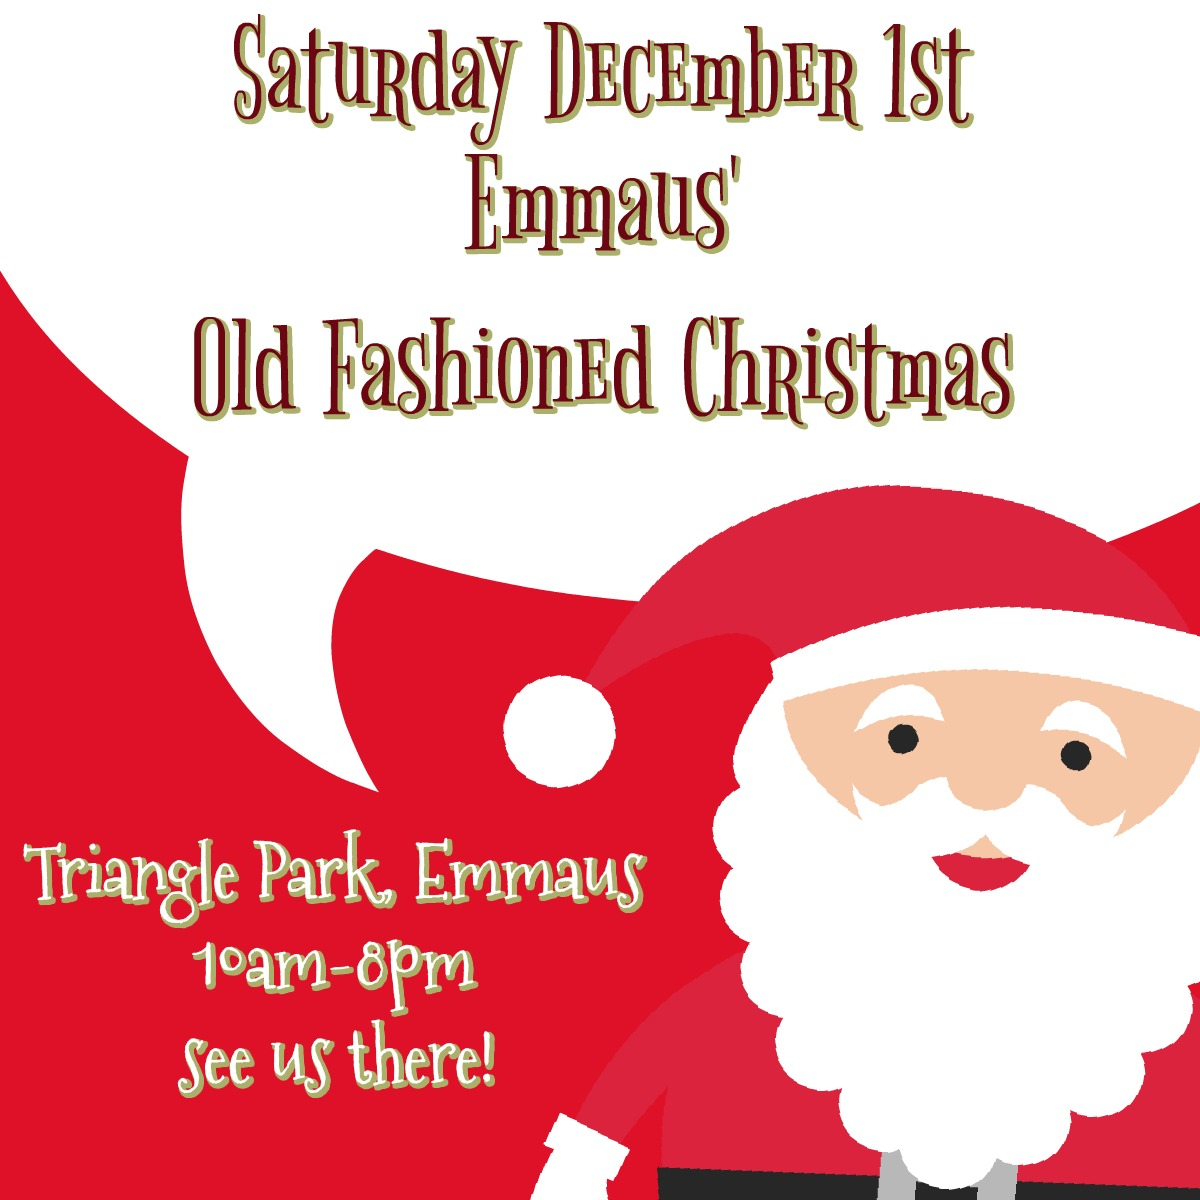 Emmaus Old Fashioned Christmas 2018